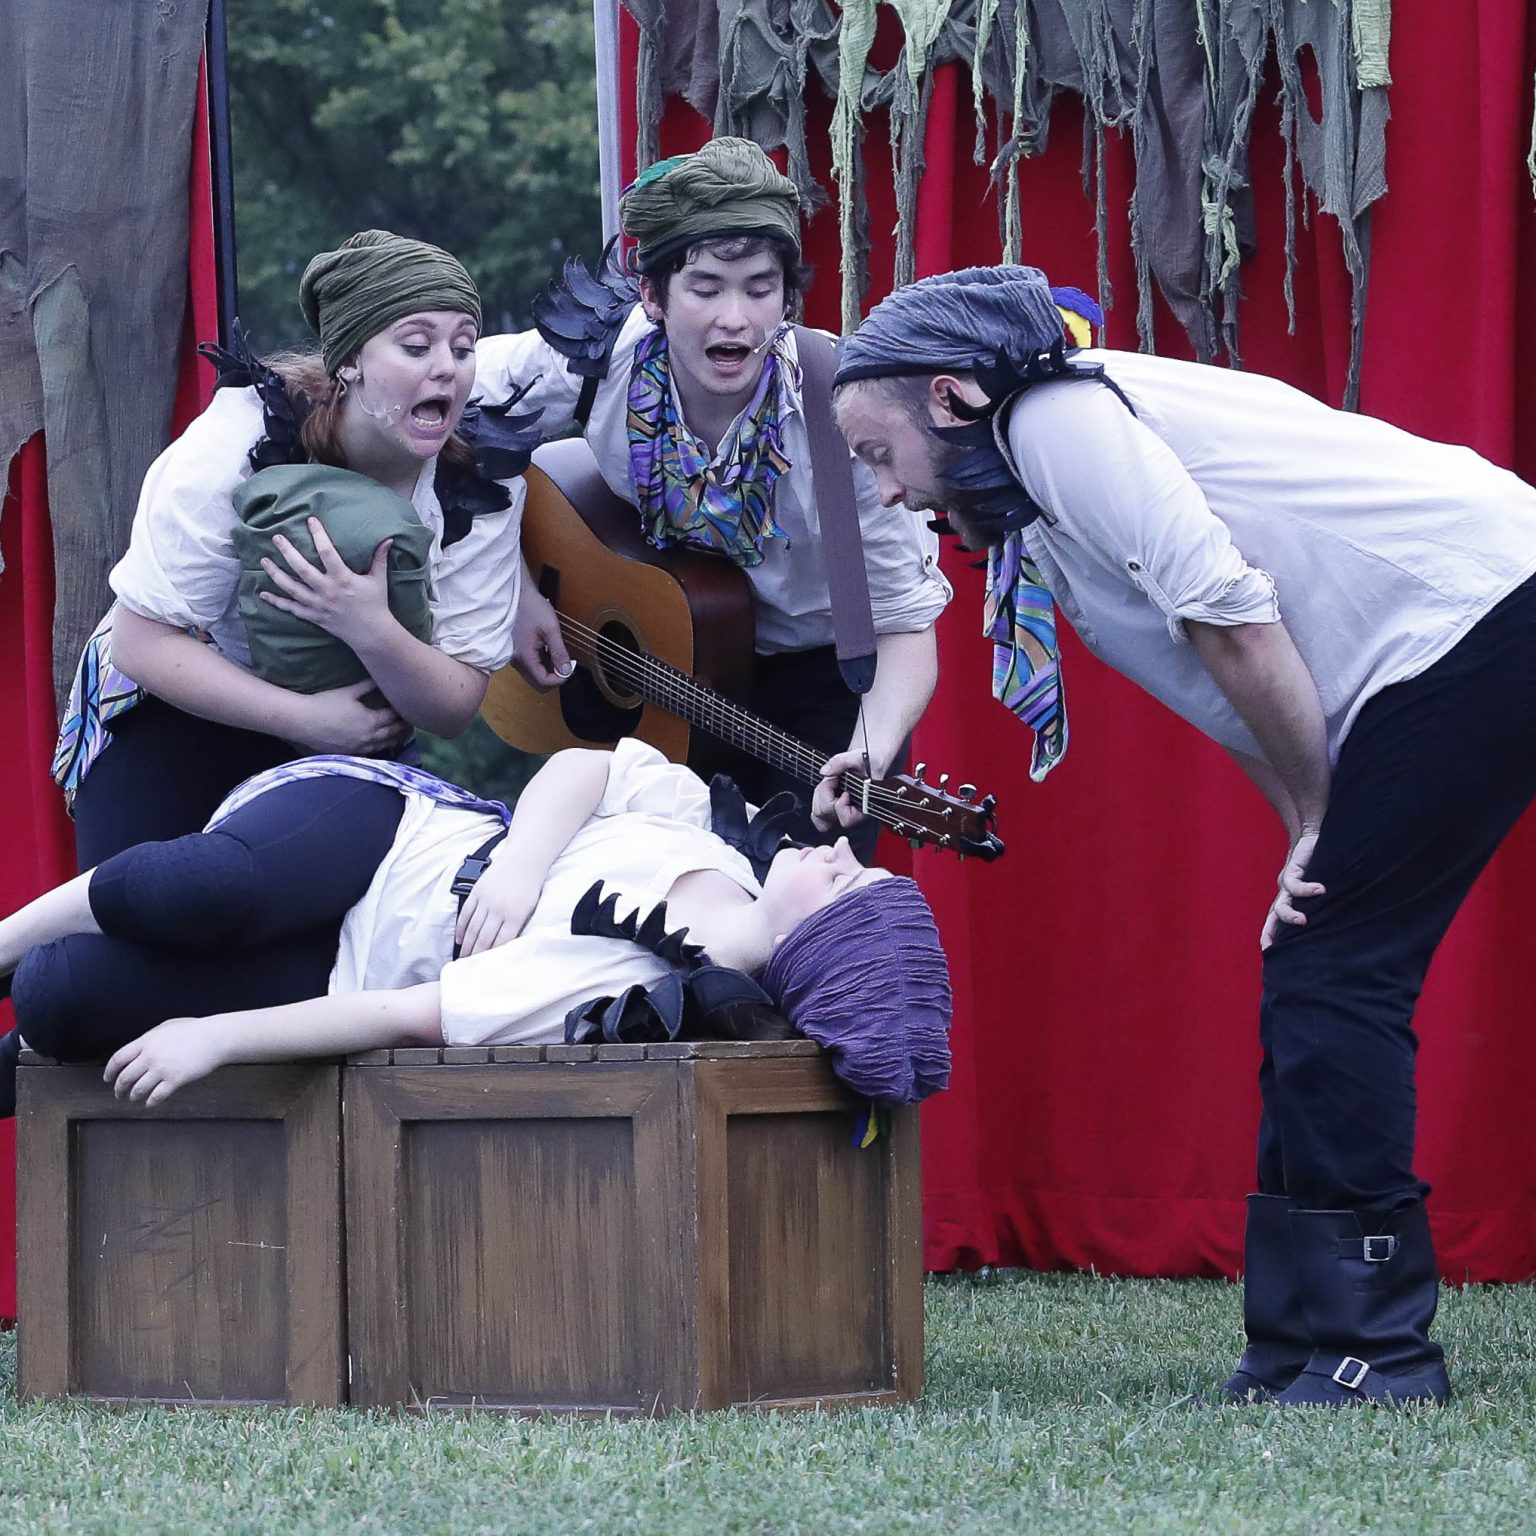 FREE Shakespeare in the Park: A Midsummer Night's Dream